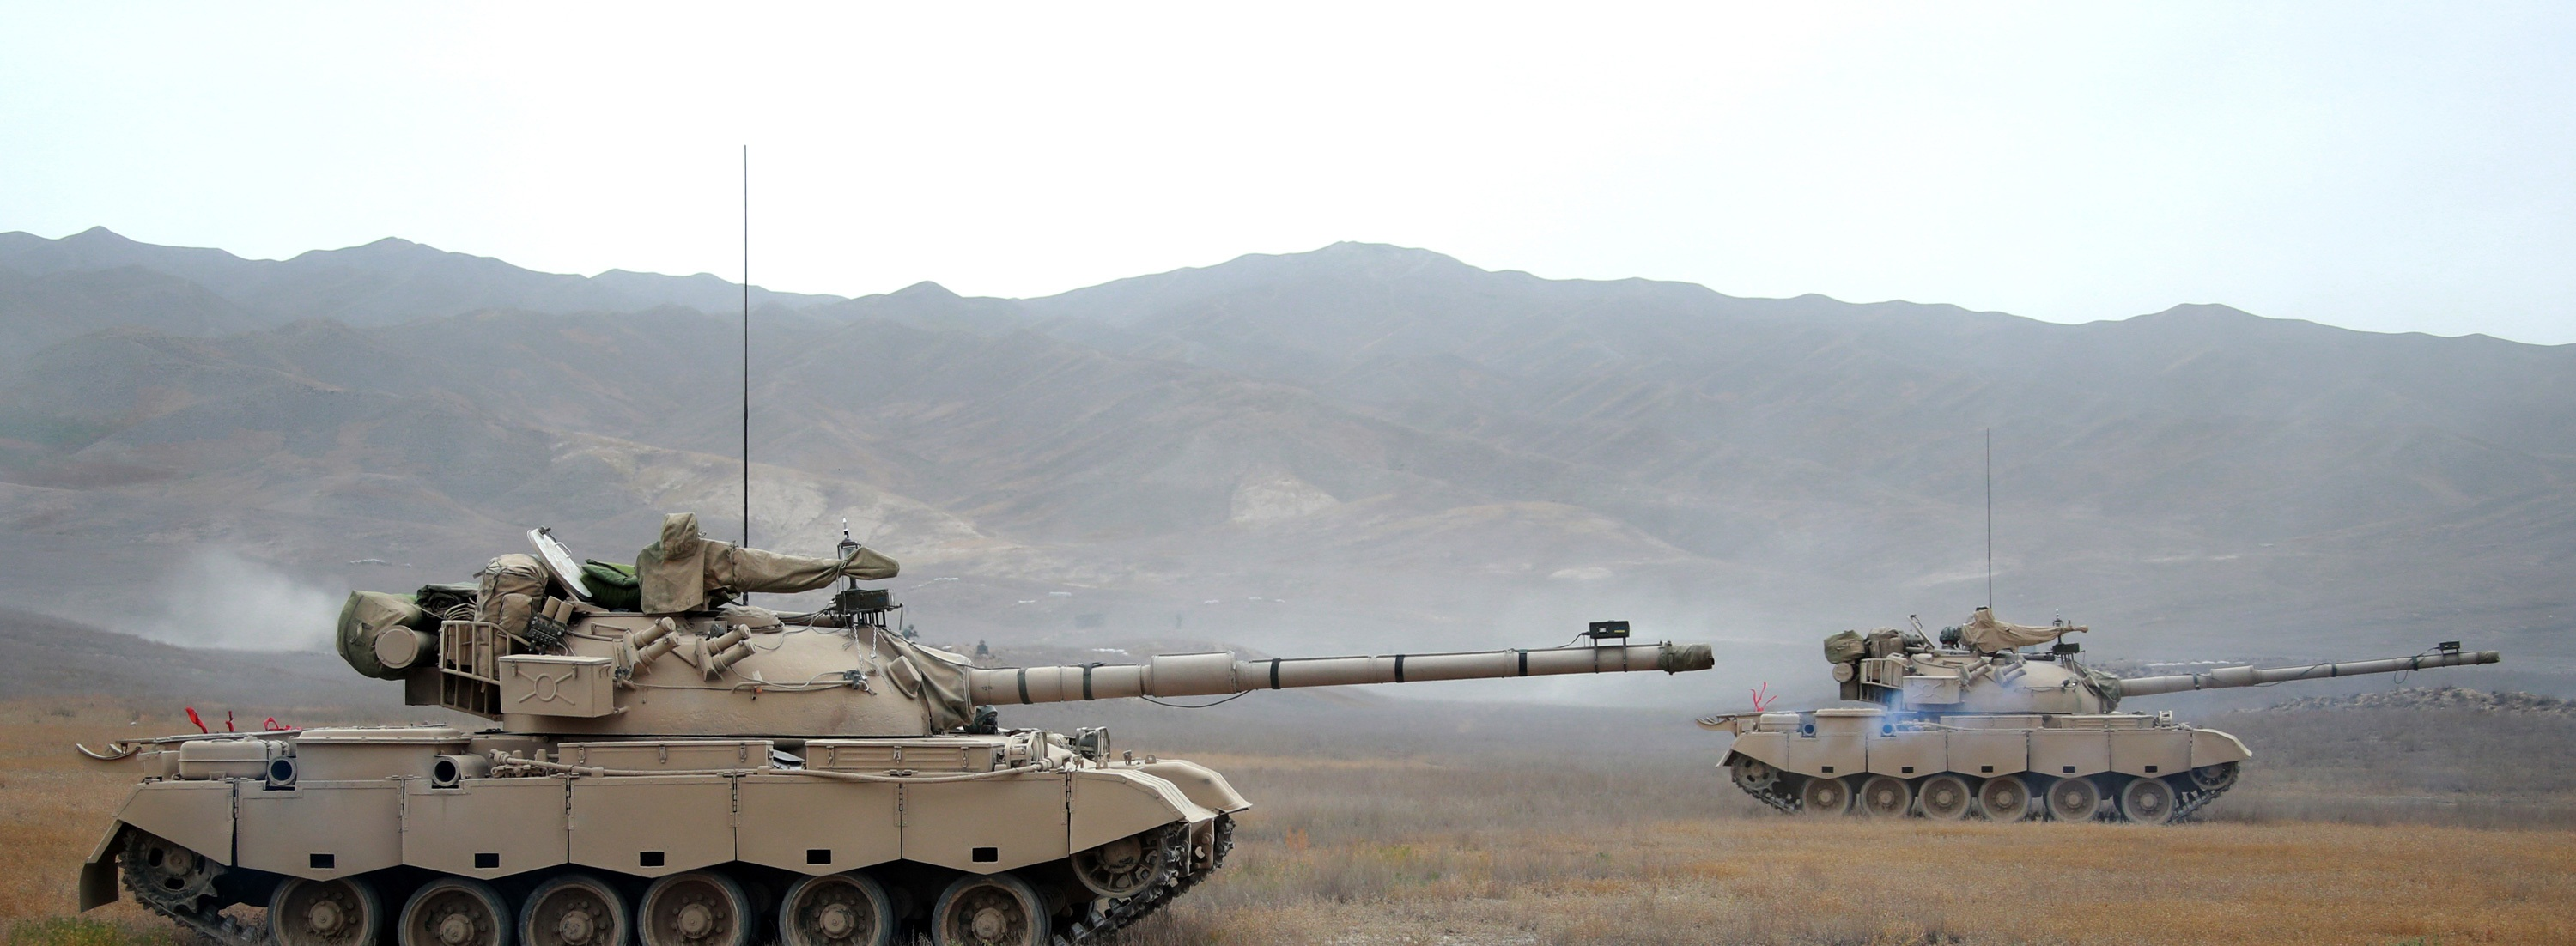 Armored recovery vehicle tows damaged Type-88 MBT during training